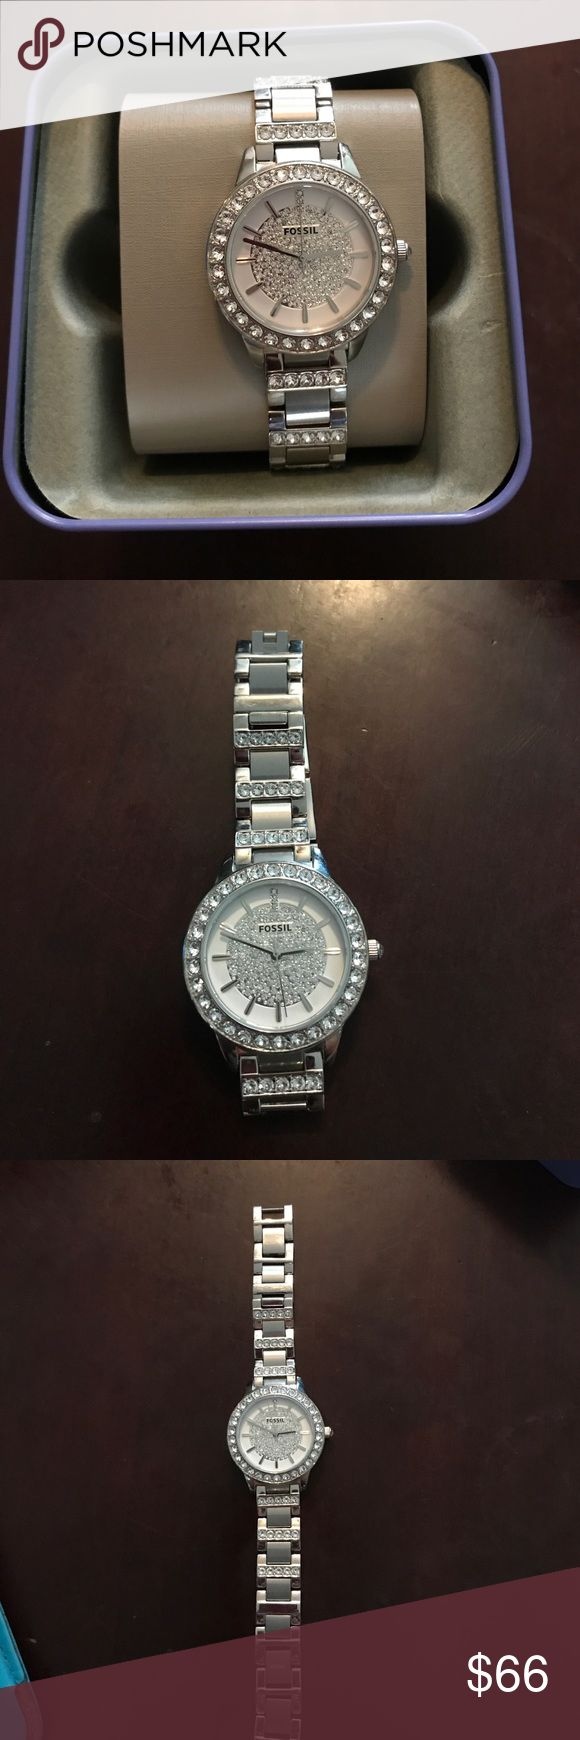 Women's Fossil Watch Women's Fossil Jesse Silver Stainless-Steel Quartz watch with Silver Dial. Preowned, functioning with new Watch battery and in excellent condition. Fossil watch box included in price. Fossil Jewelry